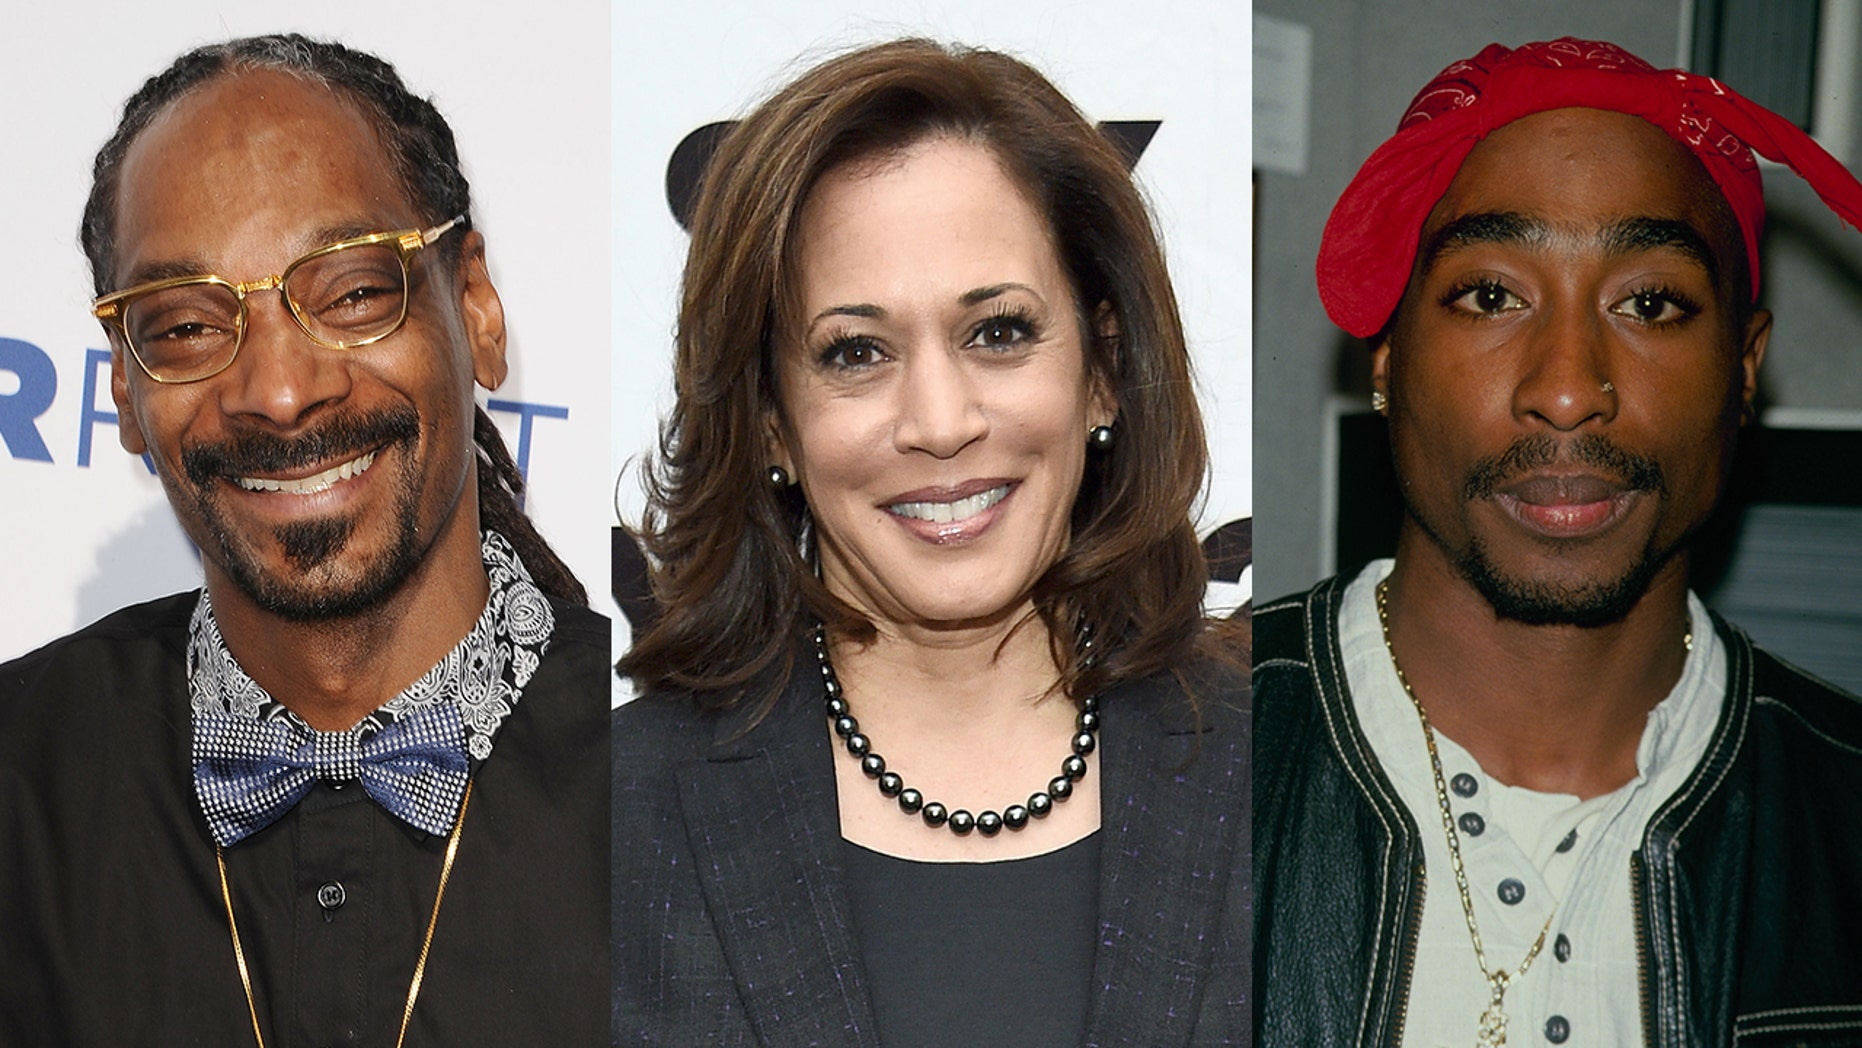 Charlamagne Tha God Defends Kamala Harris Against Weed/Rap Timeline Criticism